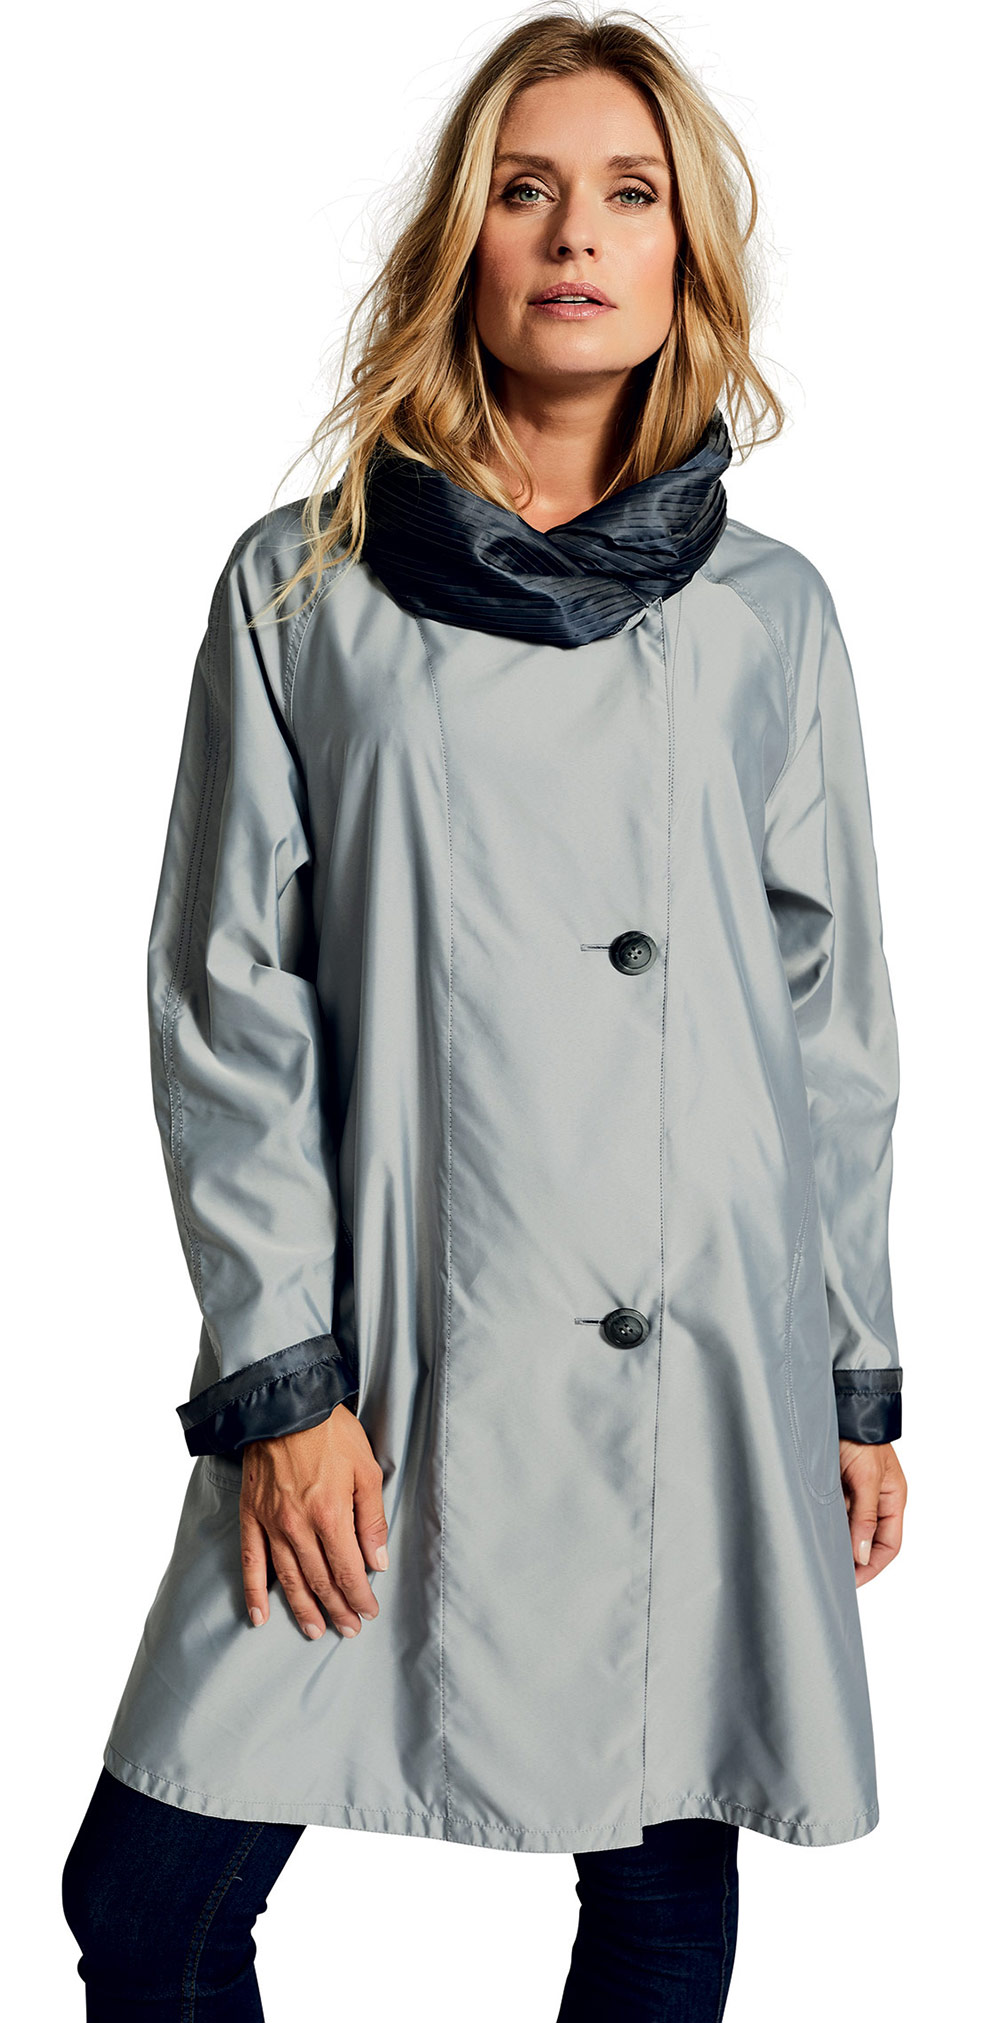 Raincoat storm - Discount 0%